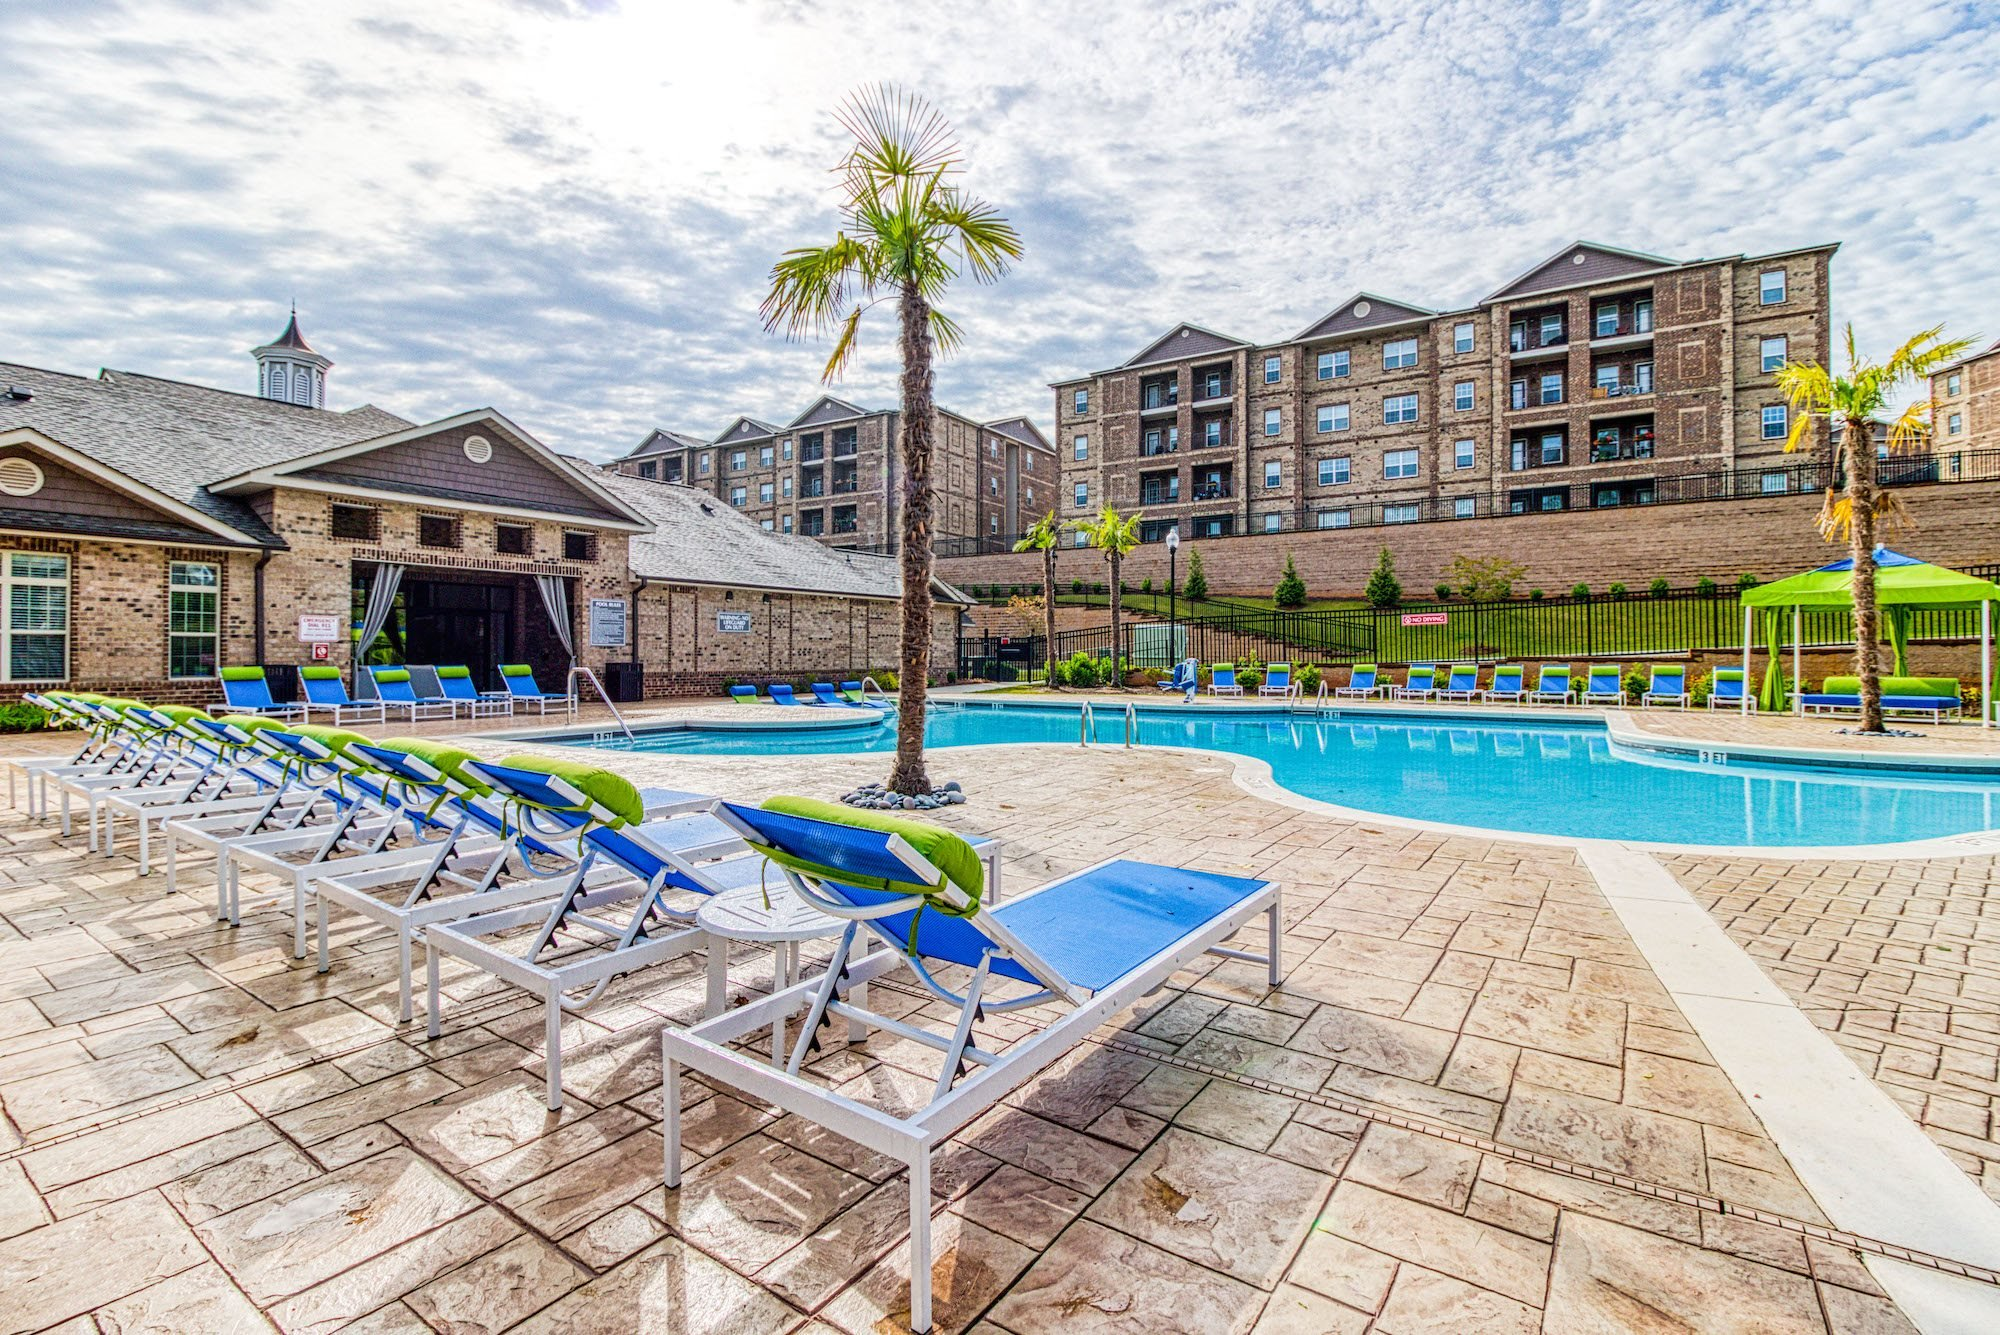 Resort-Inspired Pool at Greymont Village Apartments